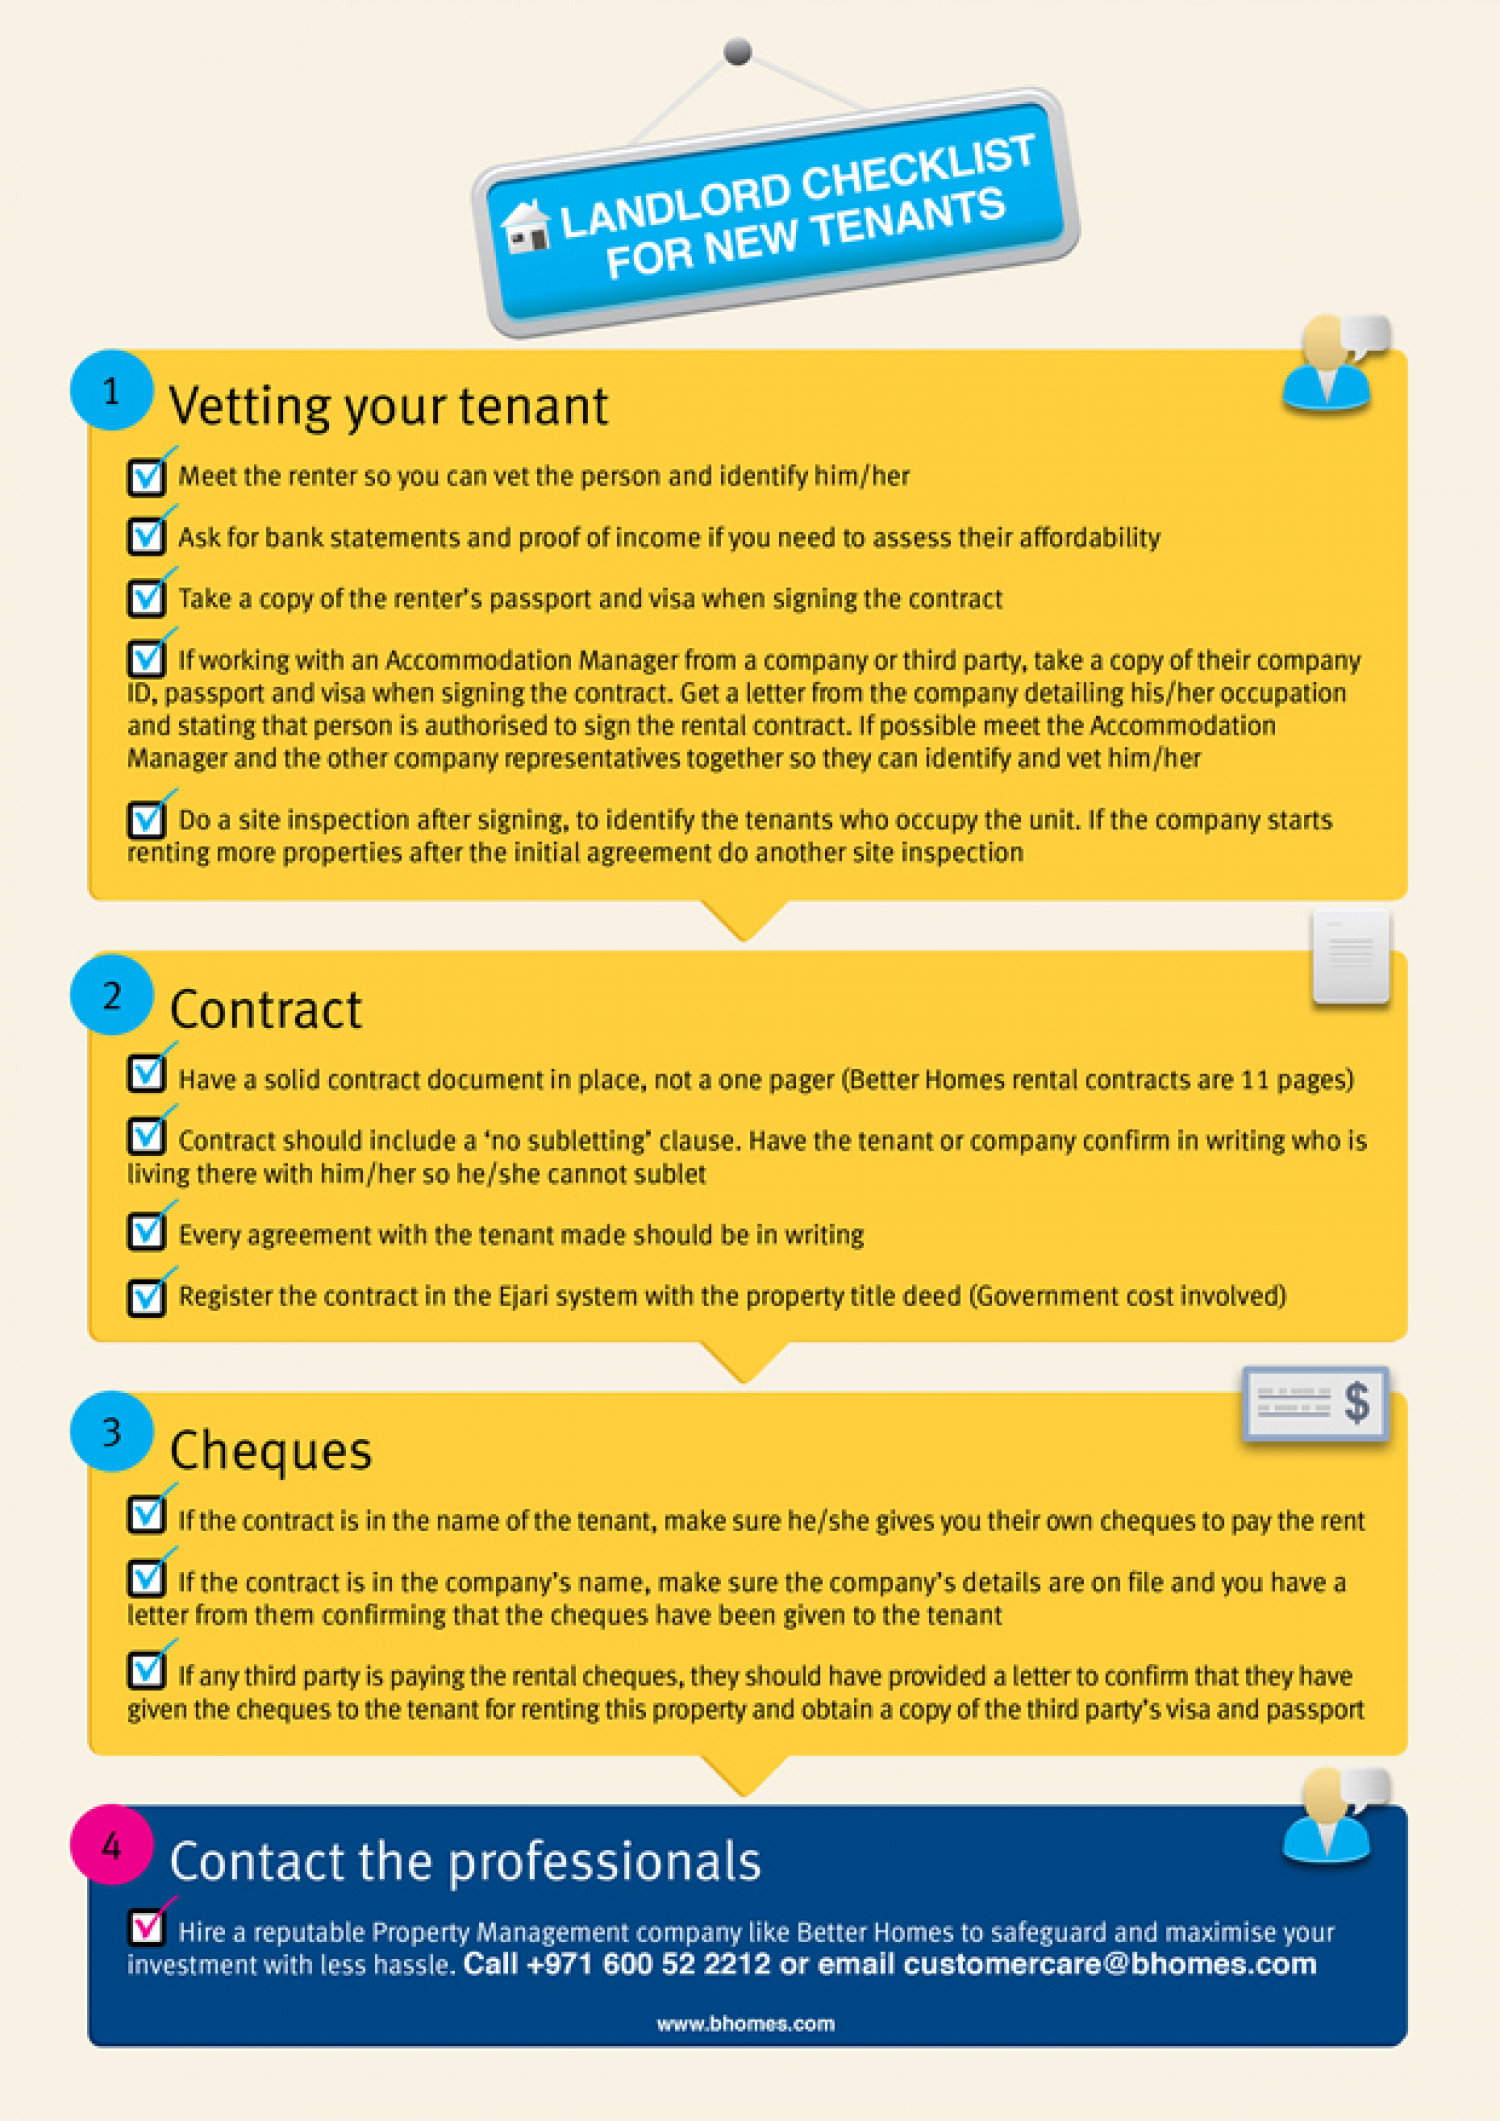 Landlord Checklist For New Tenants Infographic